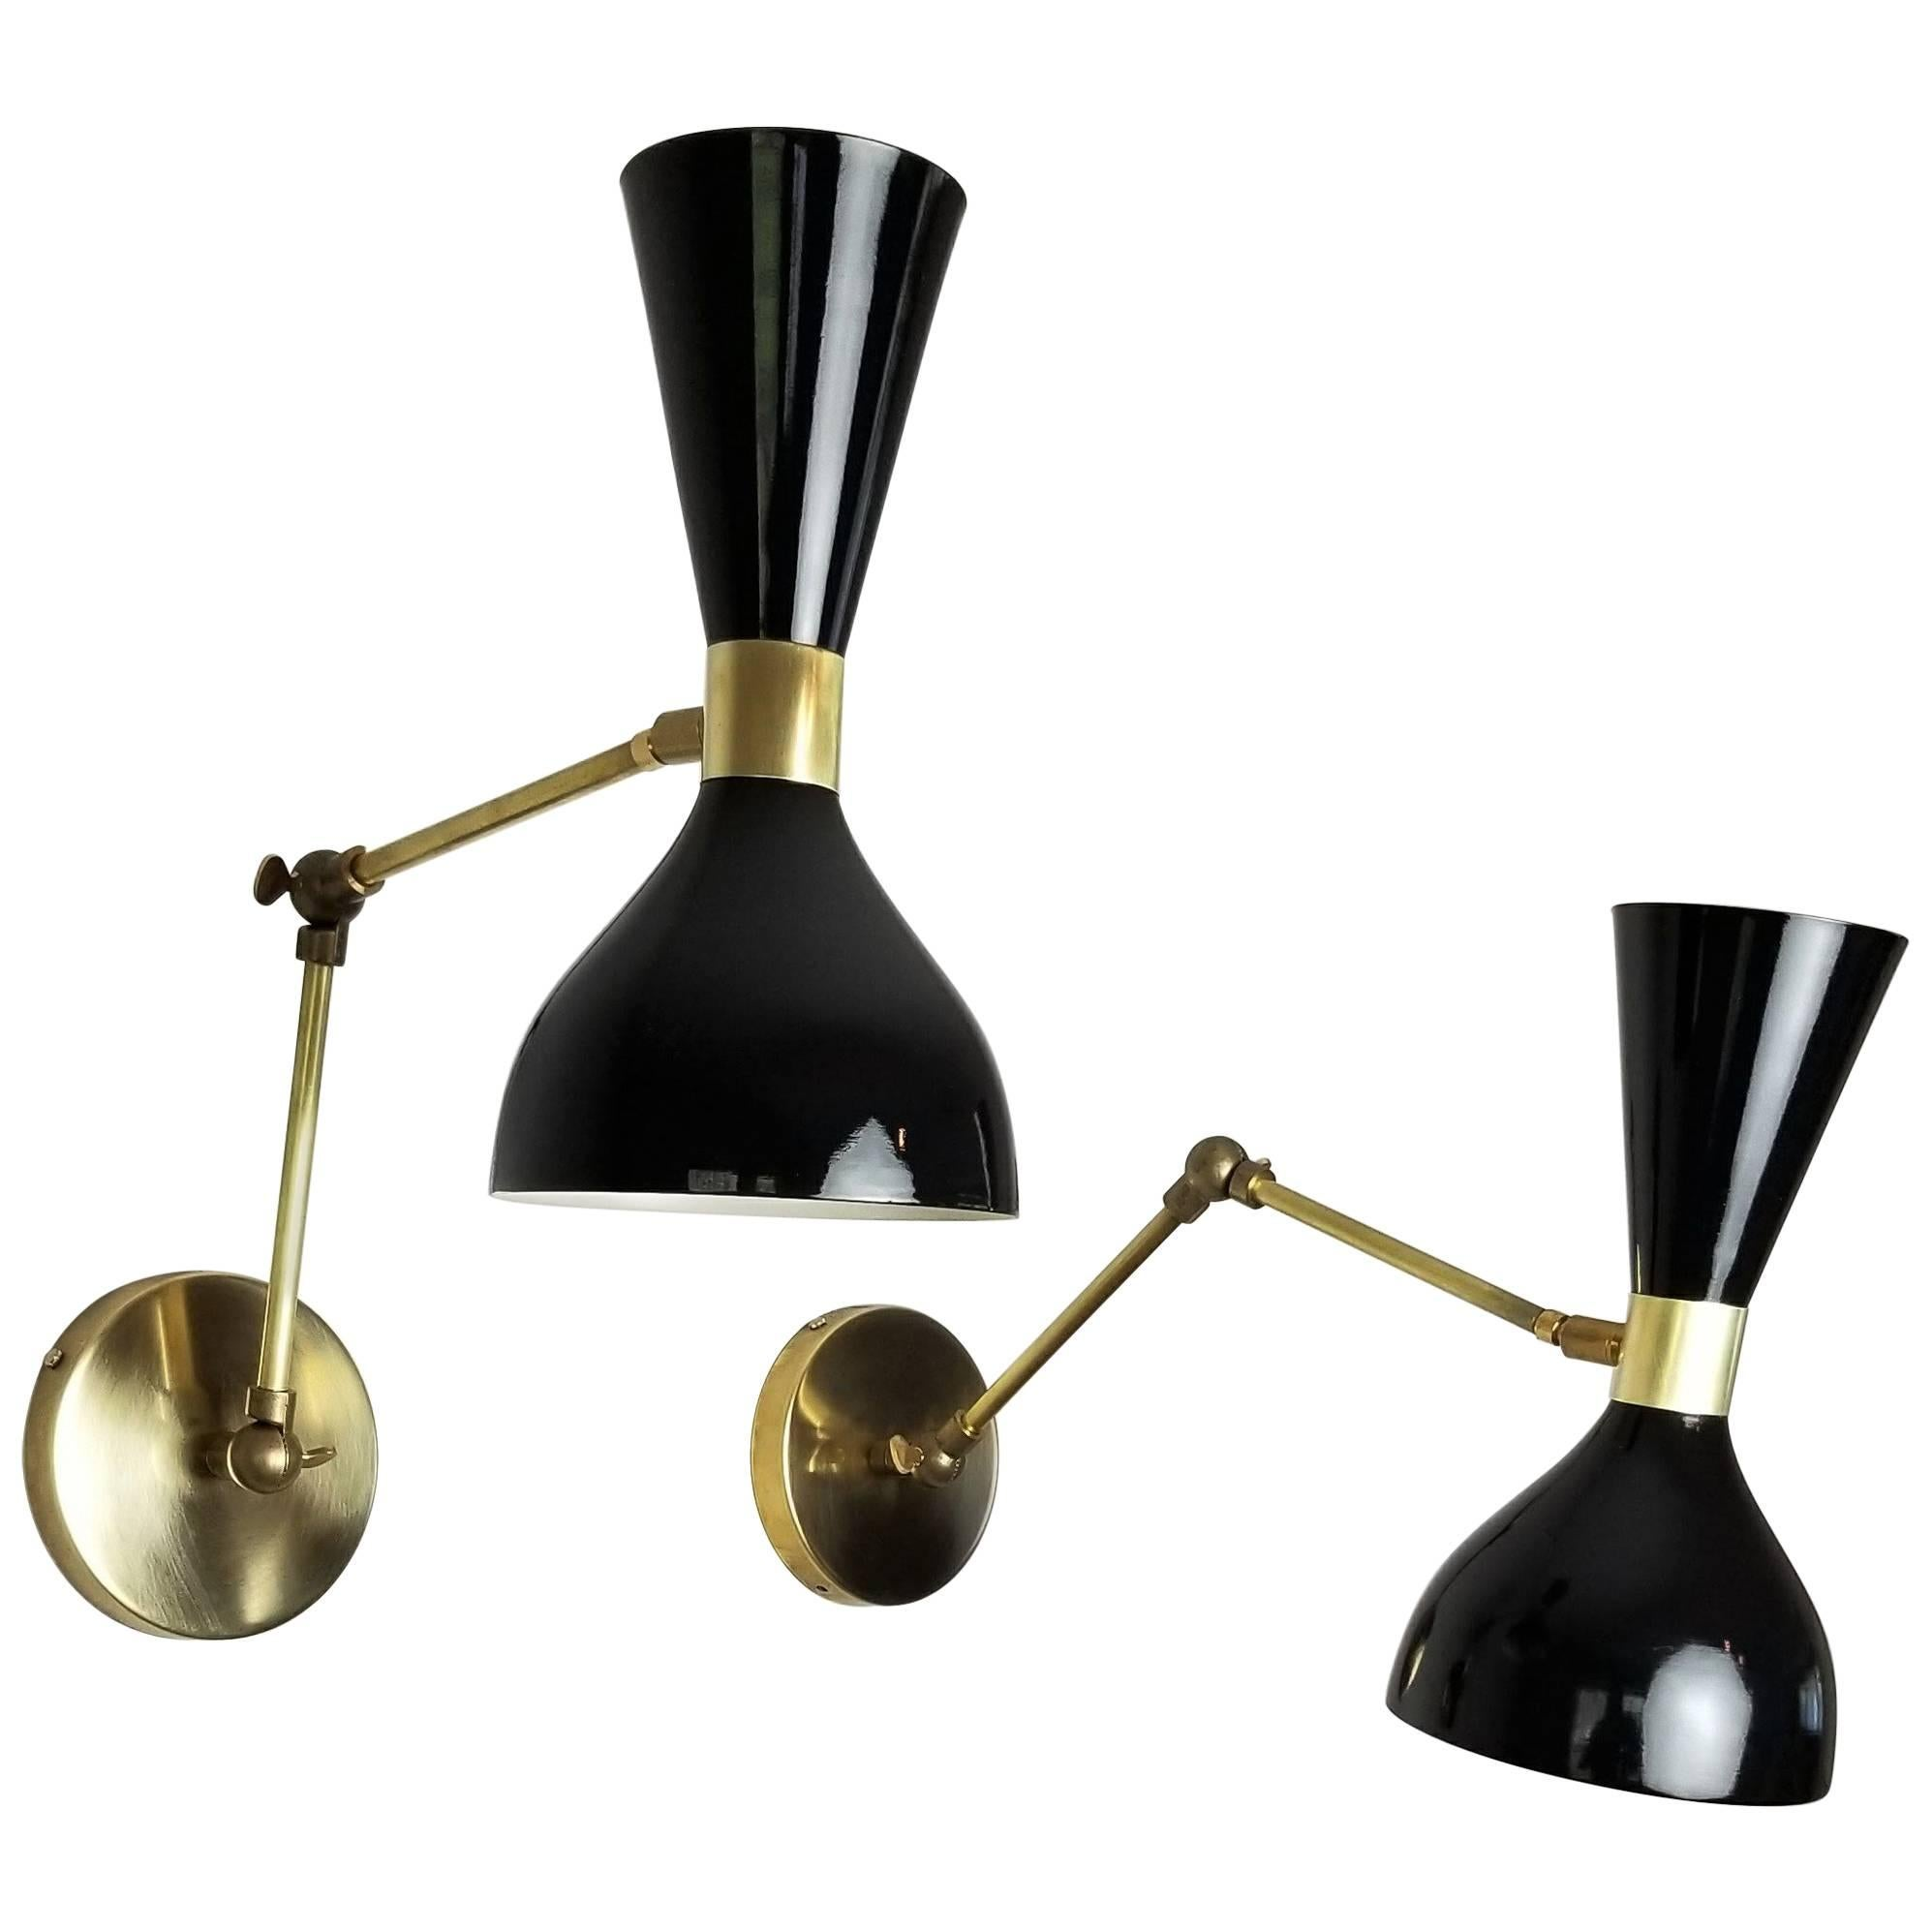 Brass + Black Enamel 'Ludo' Wall Sconce or Reading Lamp, Blueprint Lighting NYC